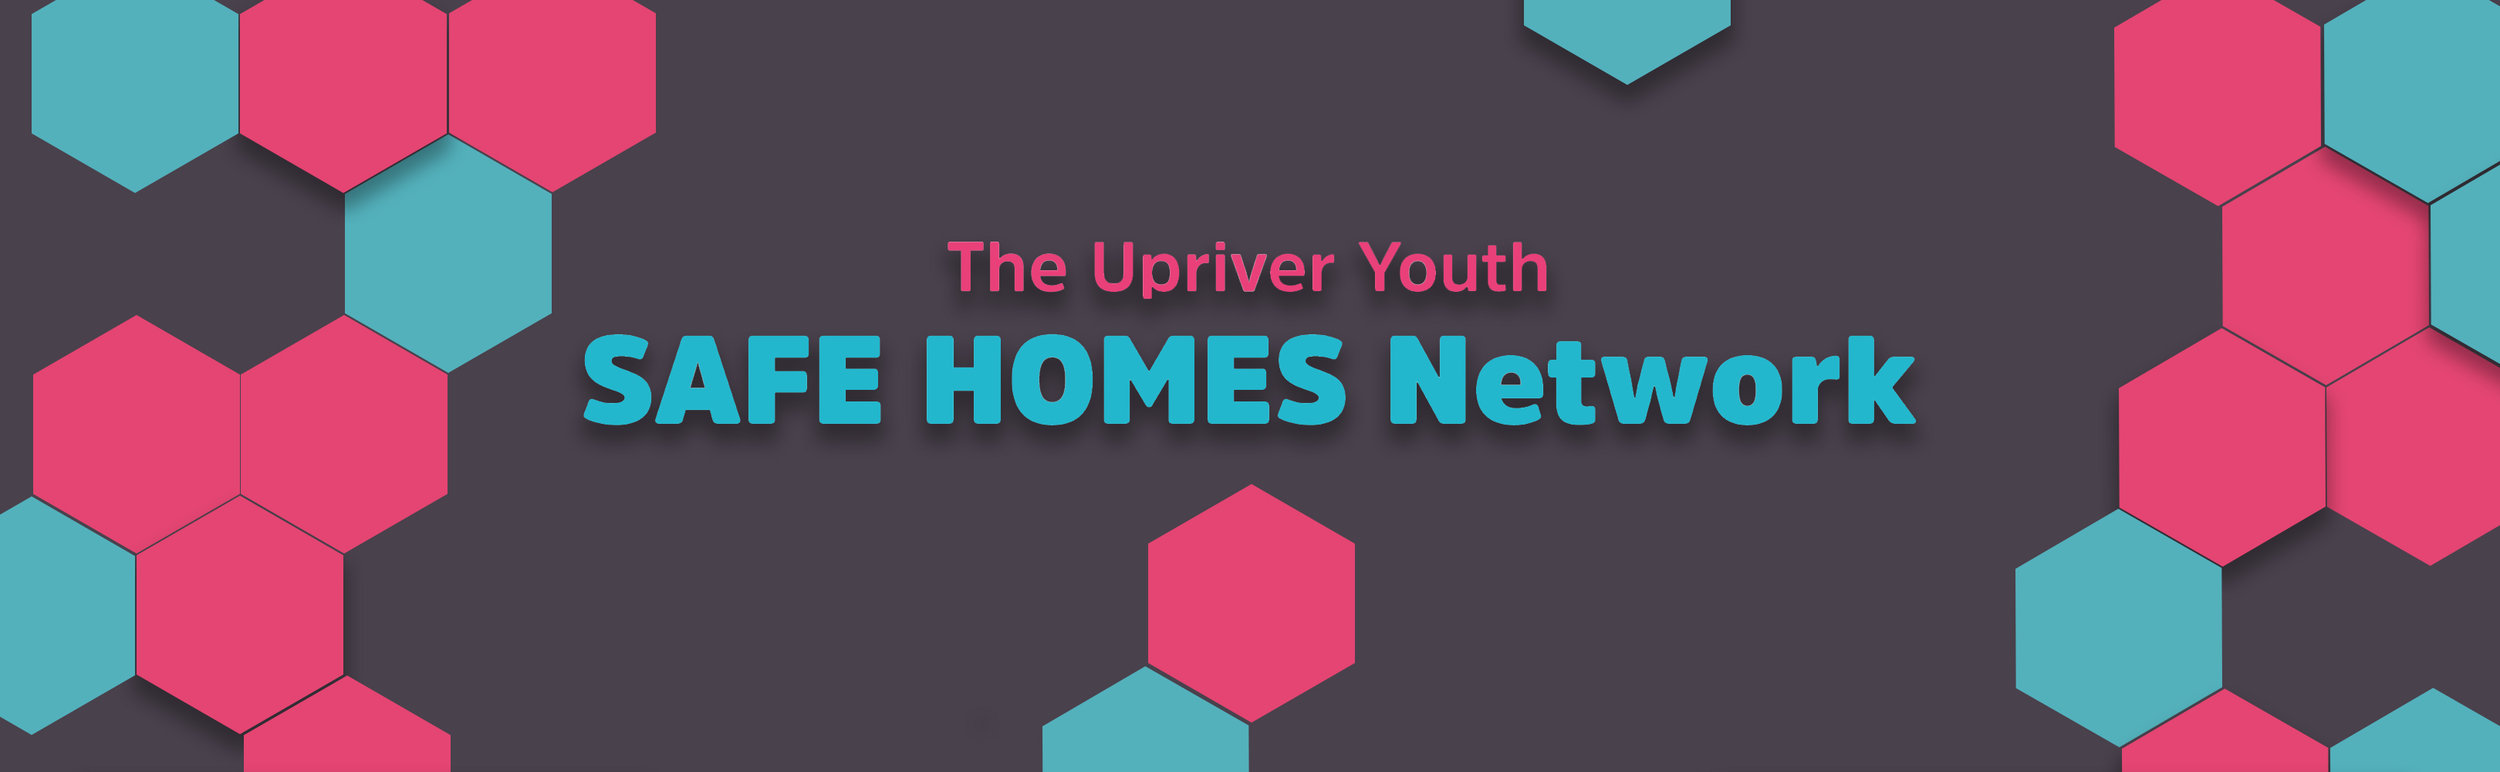 Up River Safe Homes Network.jpg